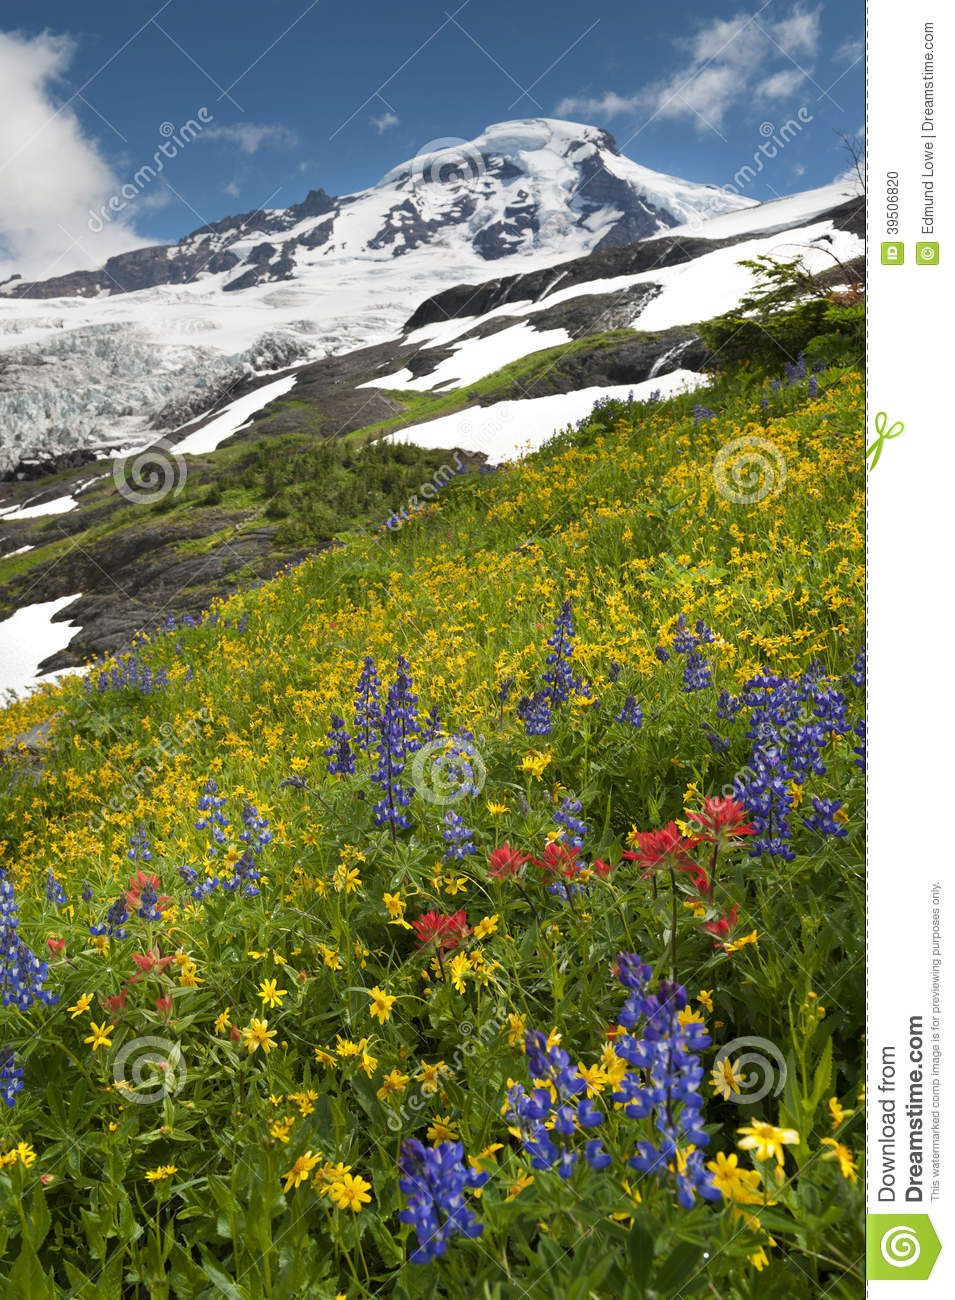 Mt. Baker Wildflowers